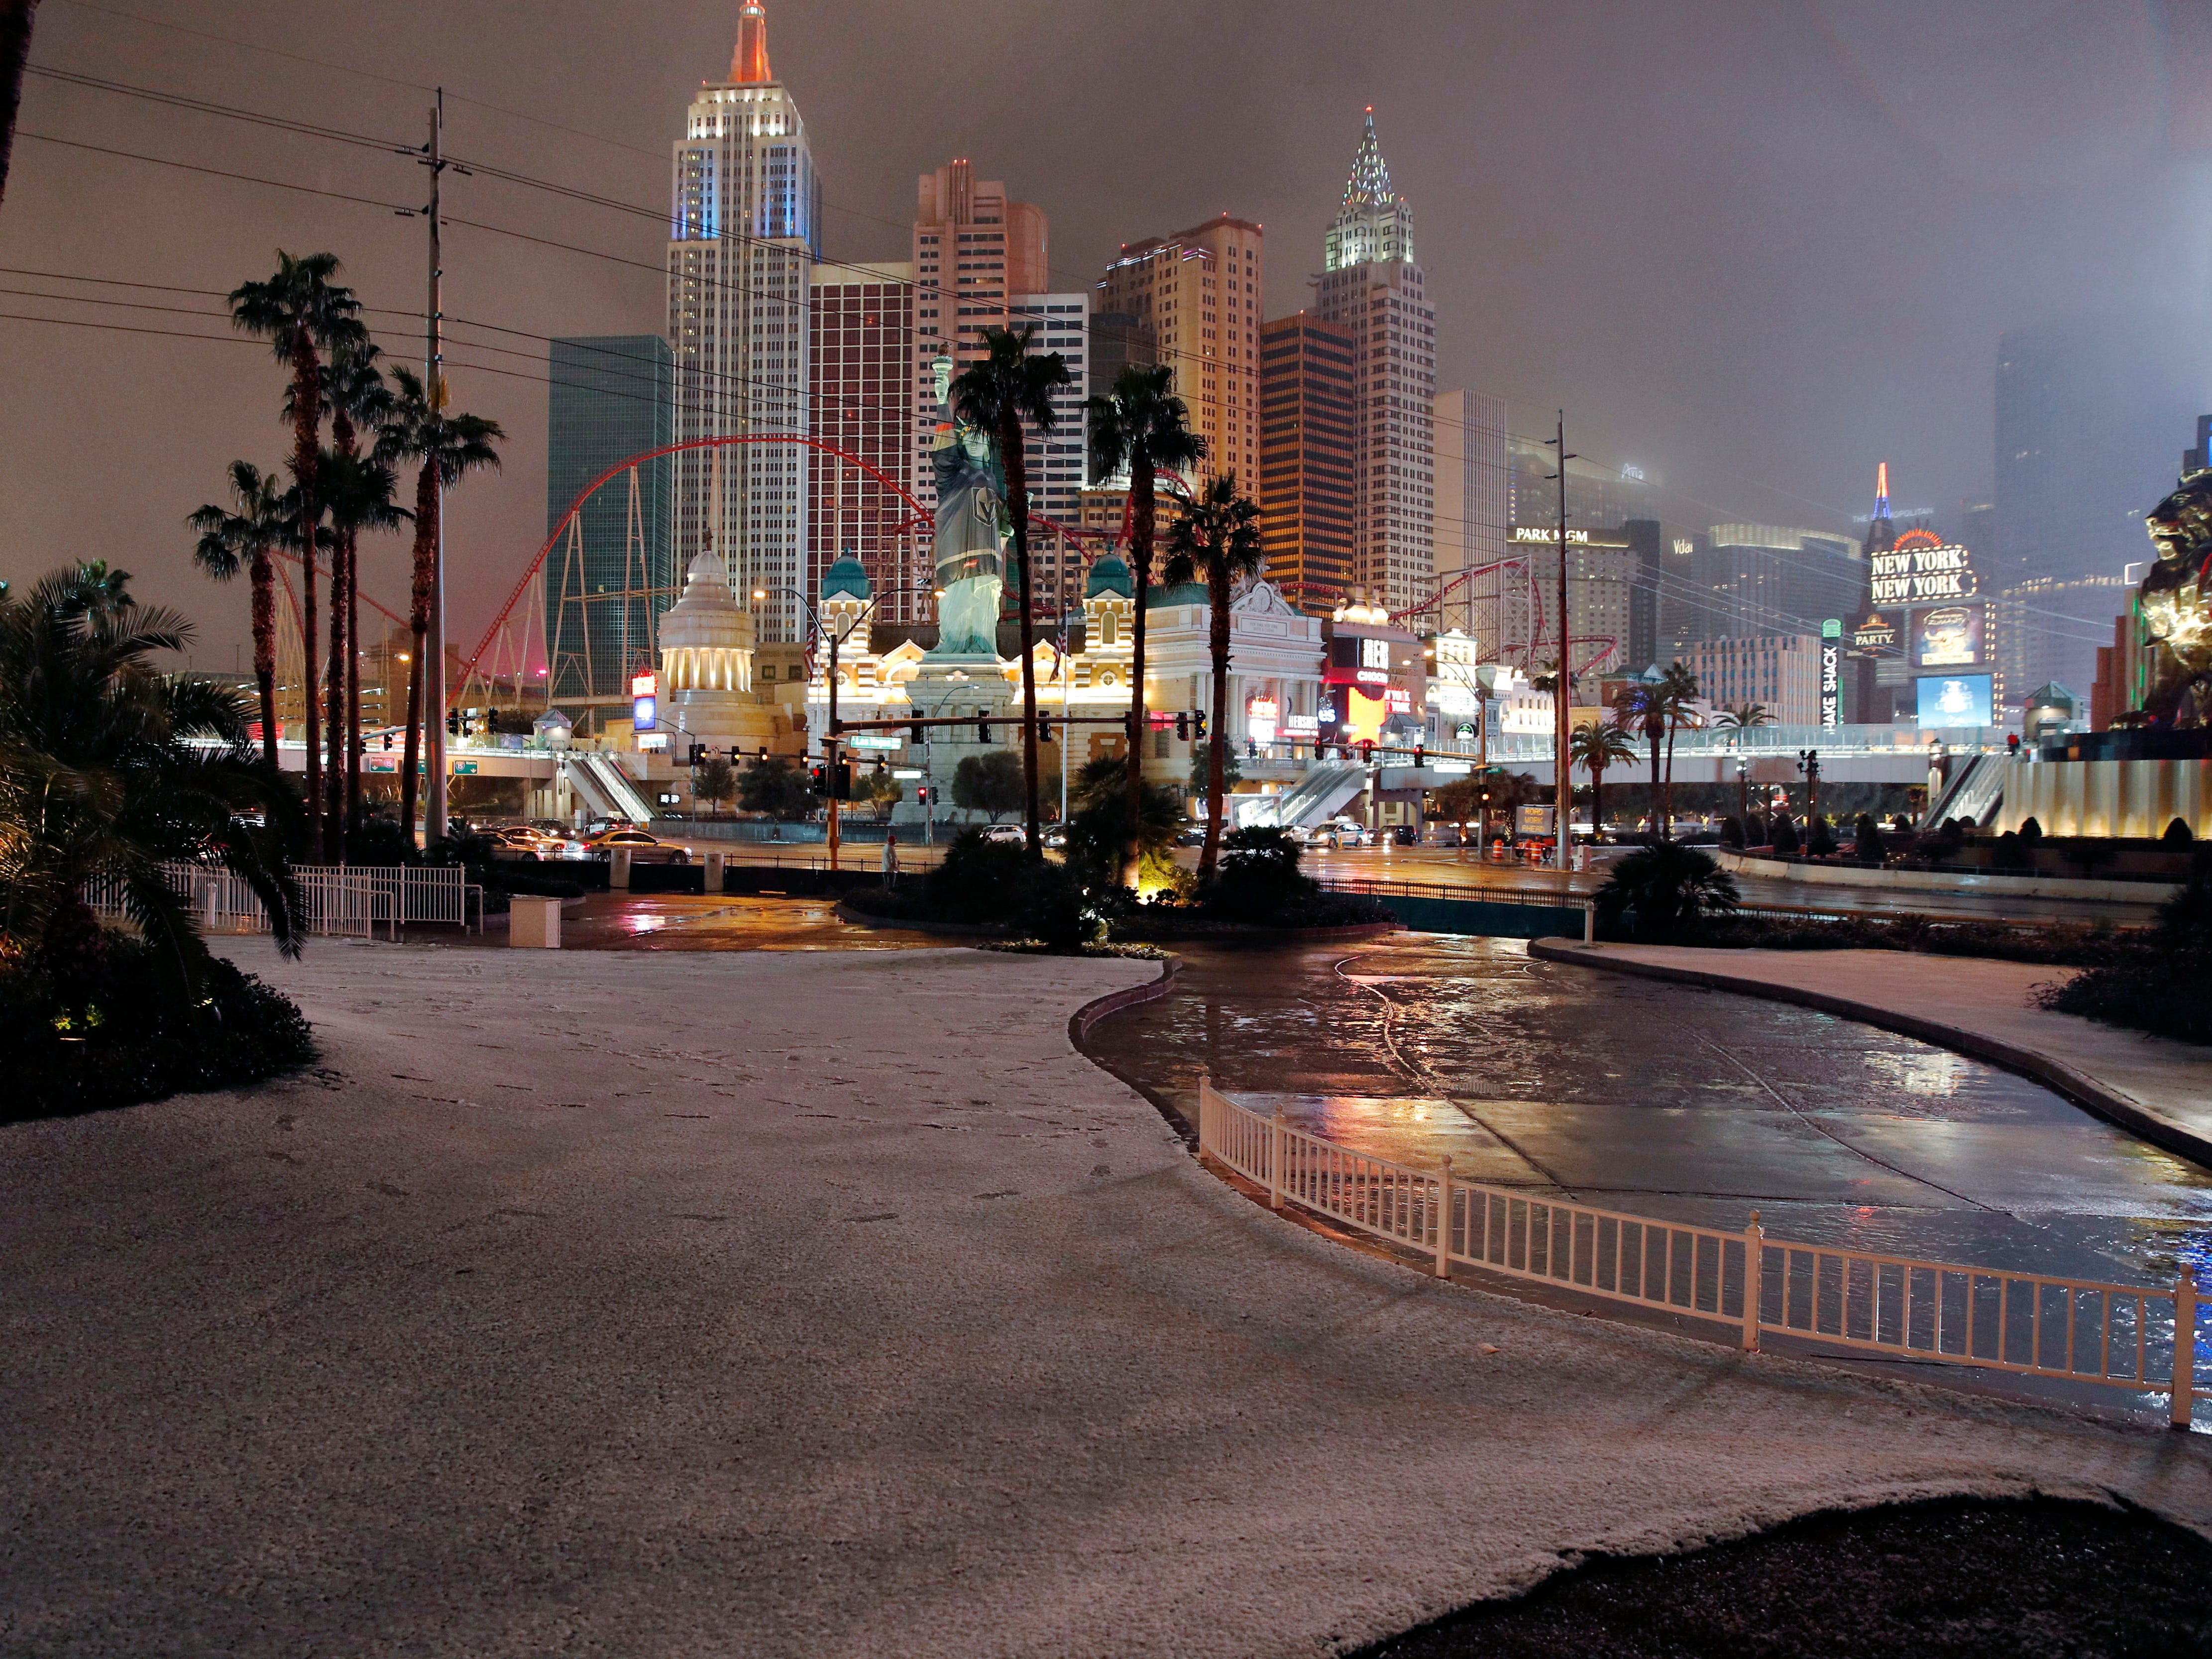 A dusting of snow covers an area along the Las Vegas Strip on Feb. 21, 2019.